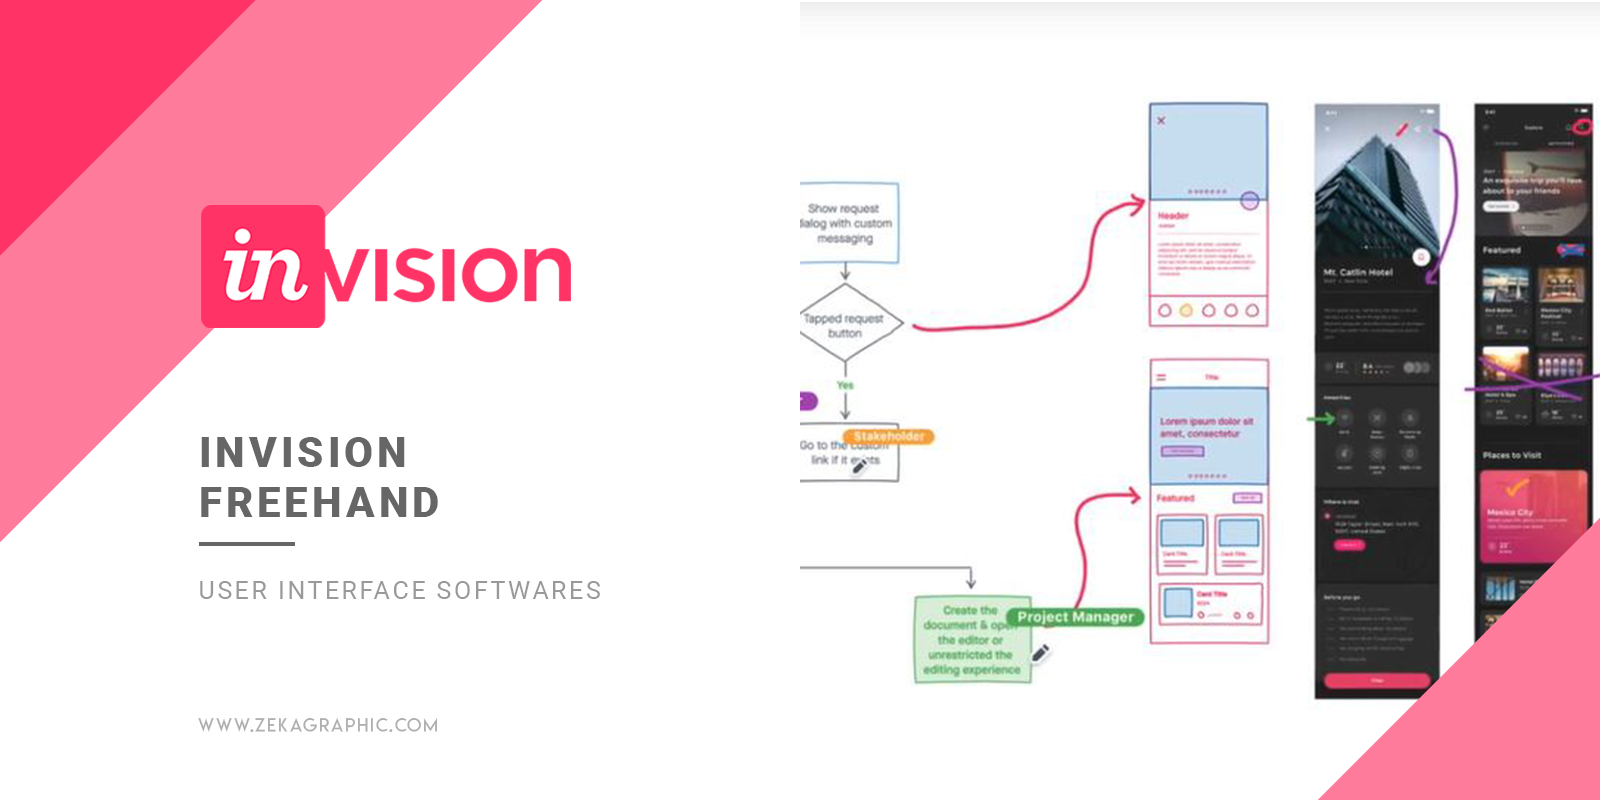 InVision Freehand User Interface Software for Graphic Design